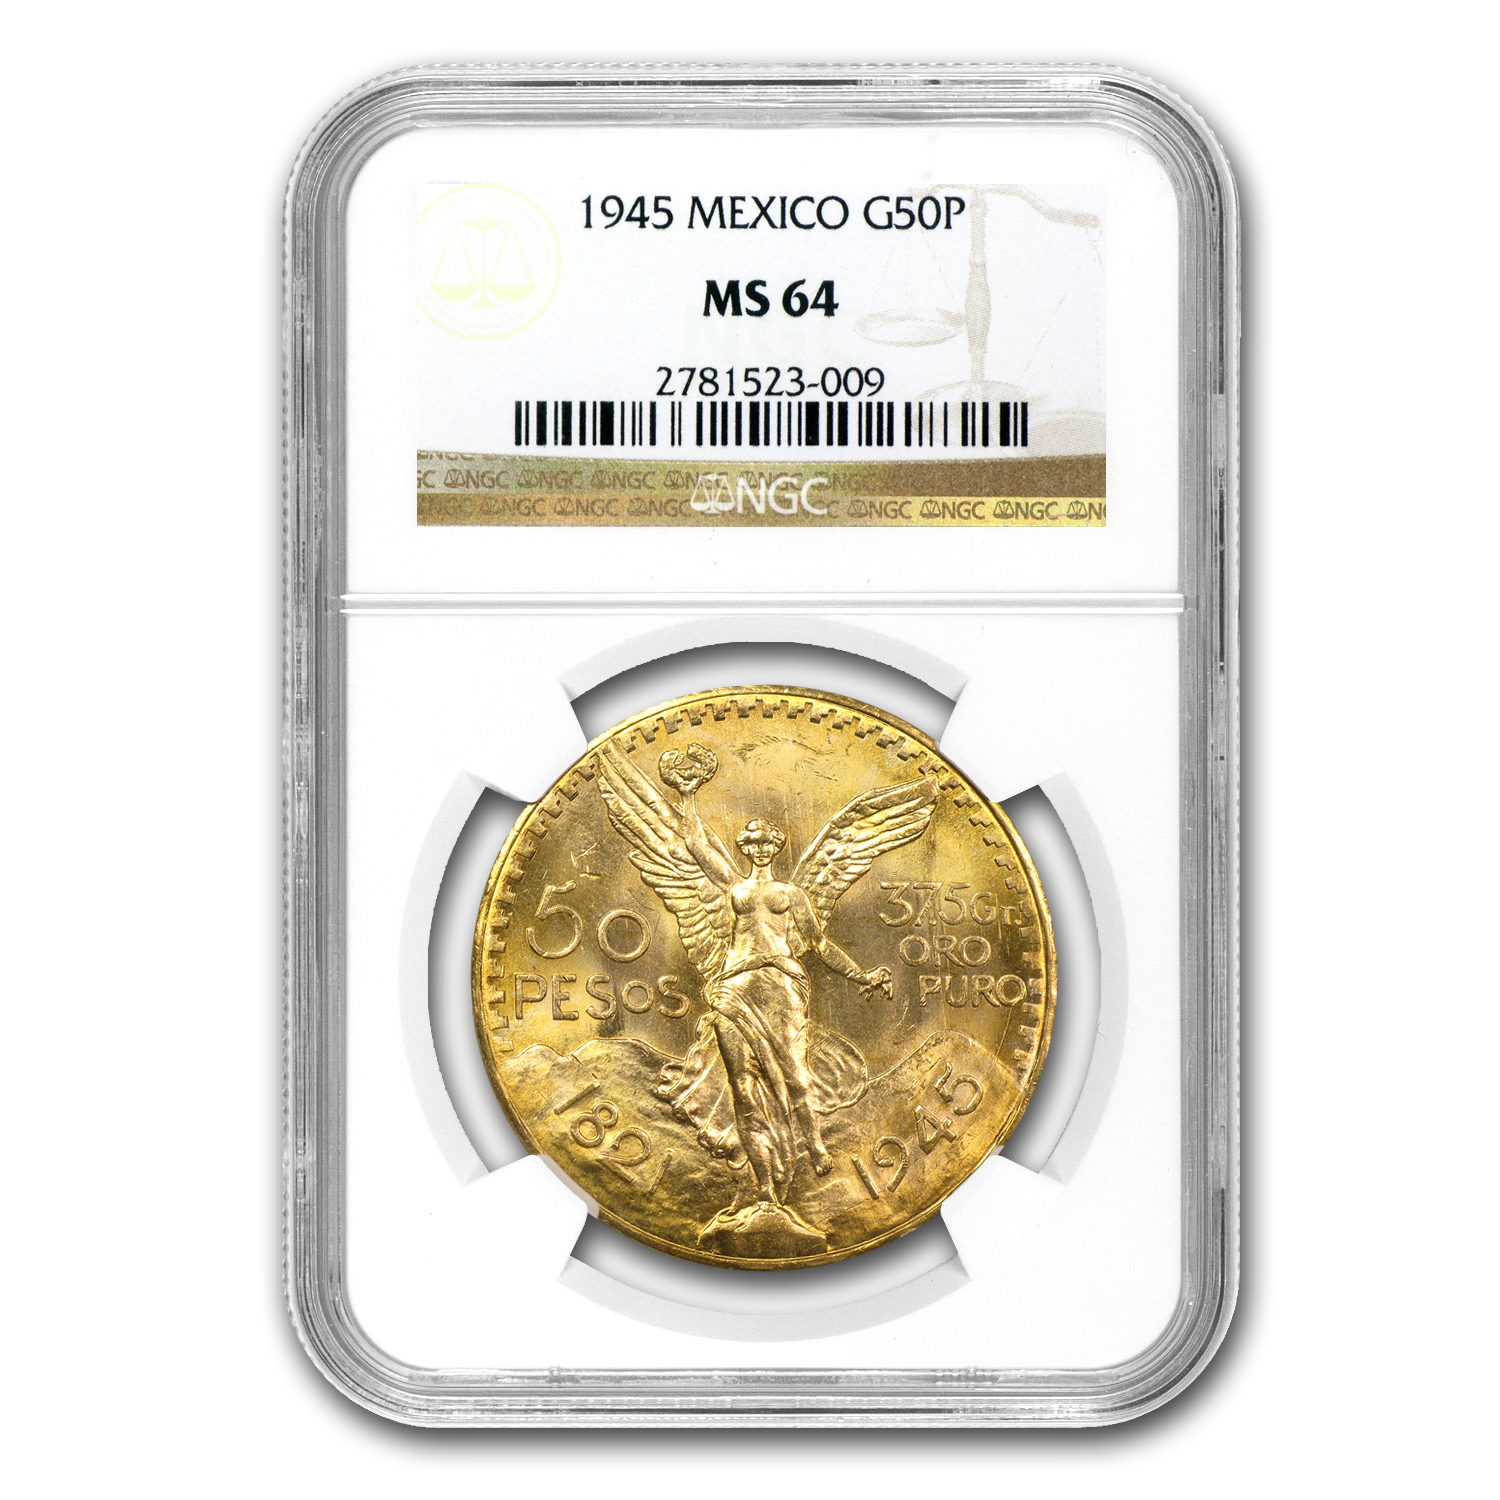 Mexico 1945 50 Pesos Gold Coin - MS-64 NGC